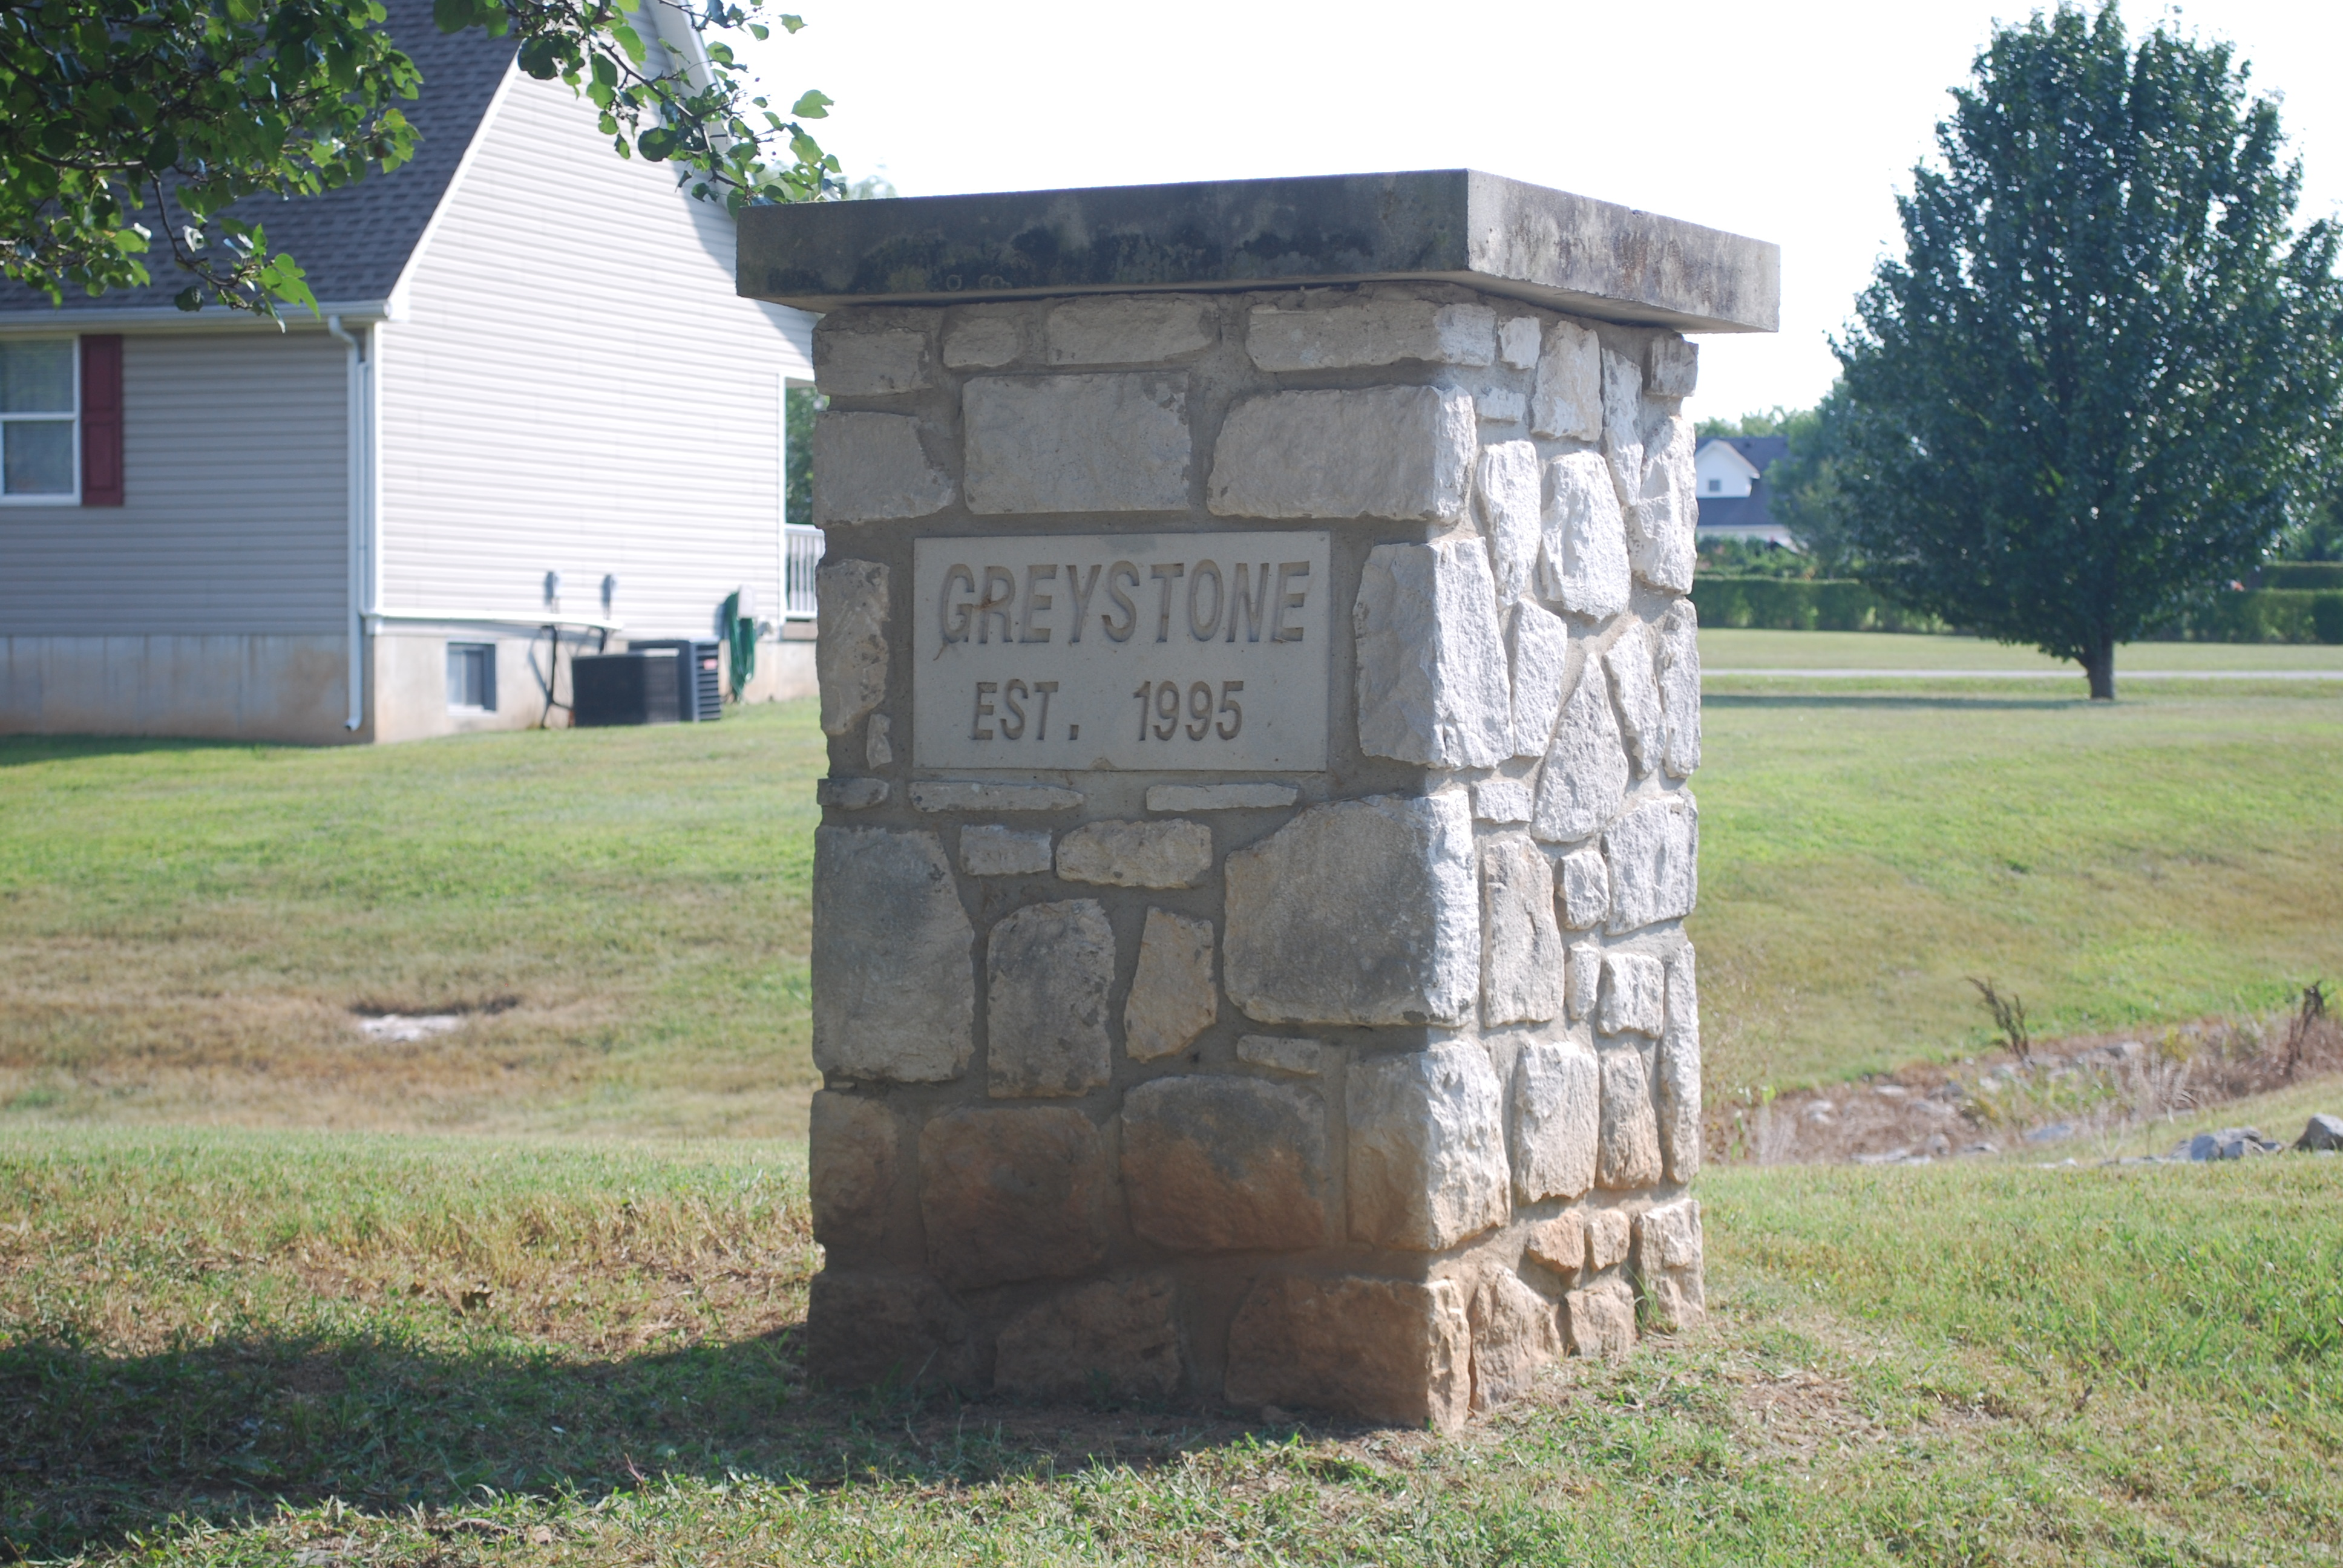 Greystone entrance sign in Bowling Green KY